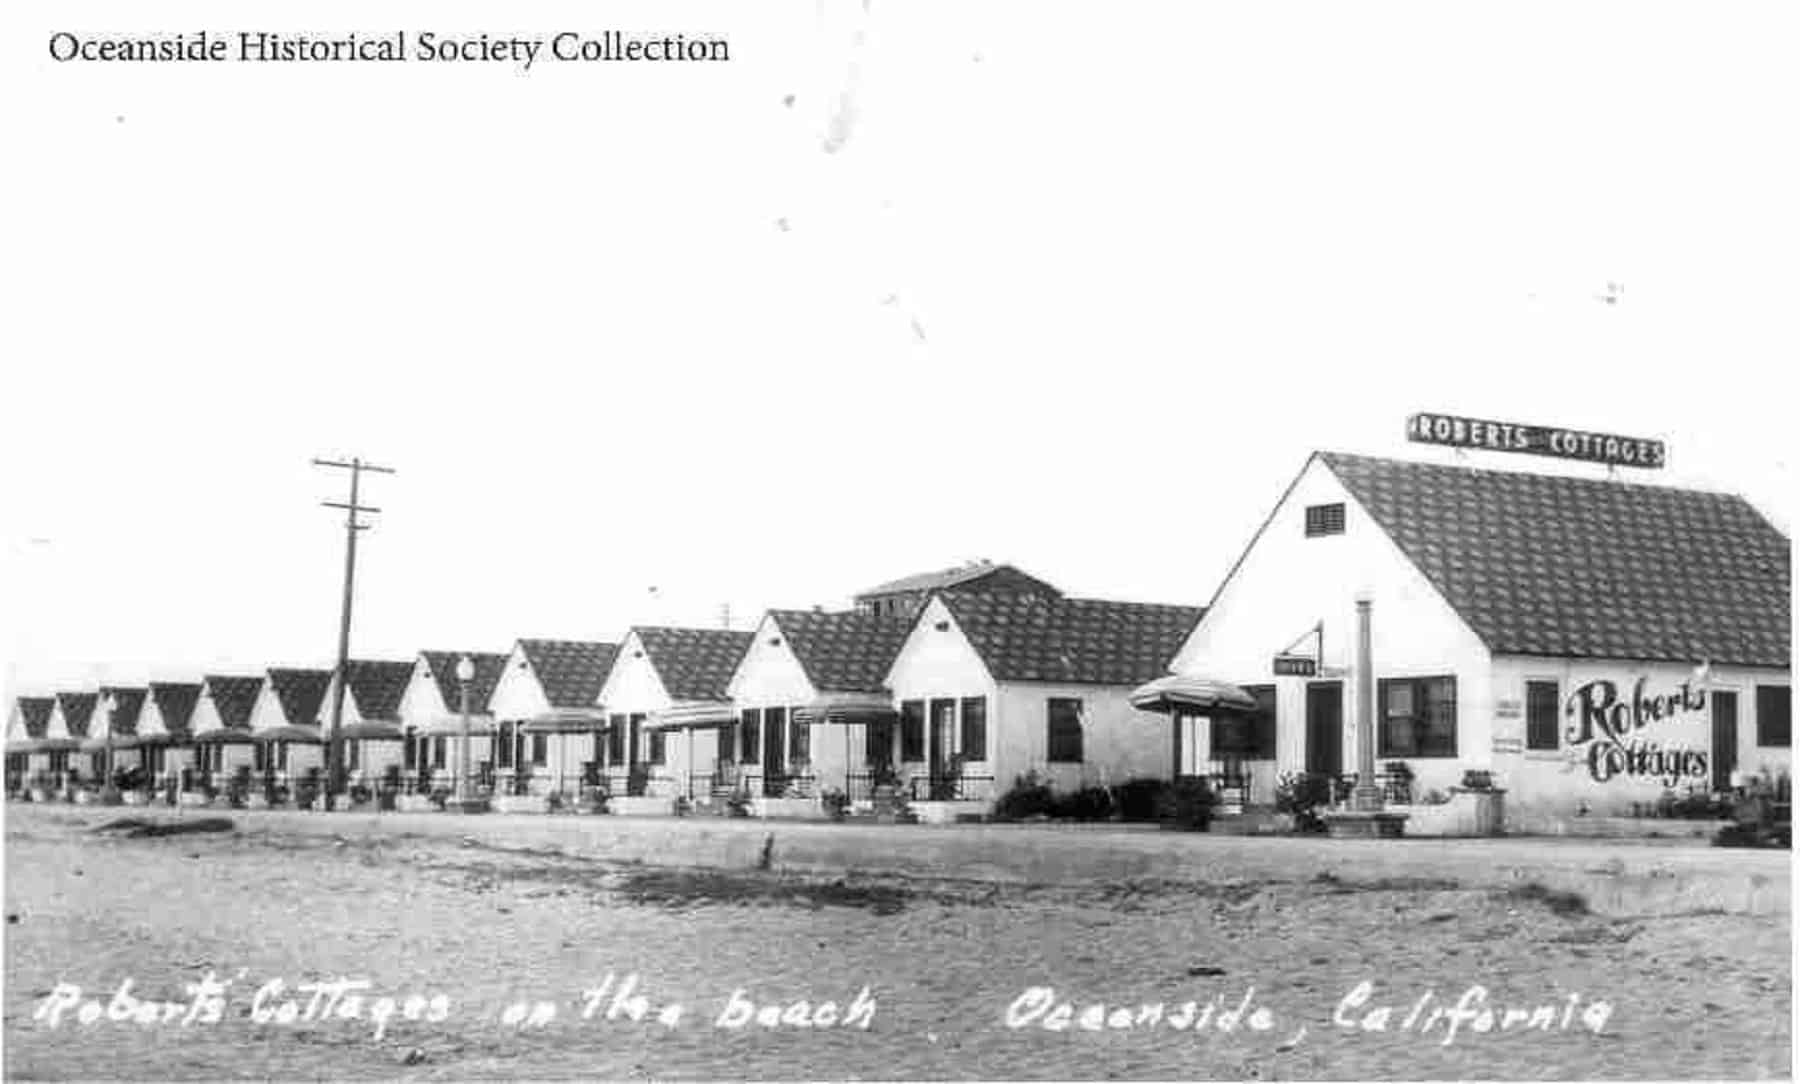 Roberts Cottages Oceanside (c. 1928)